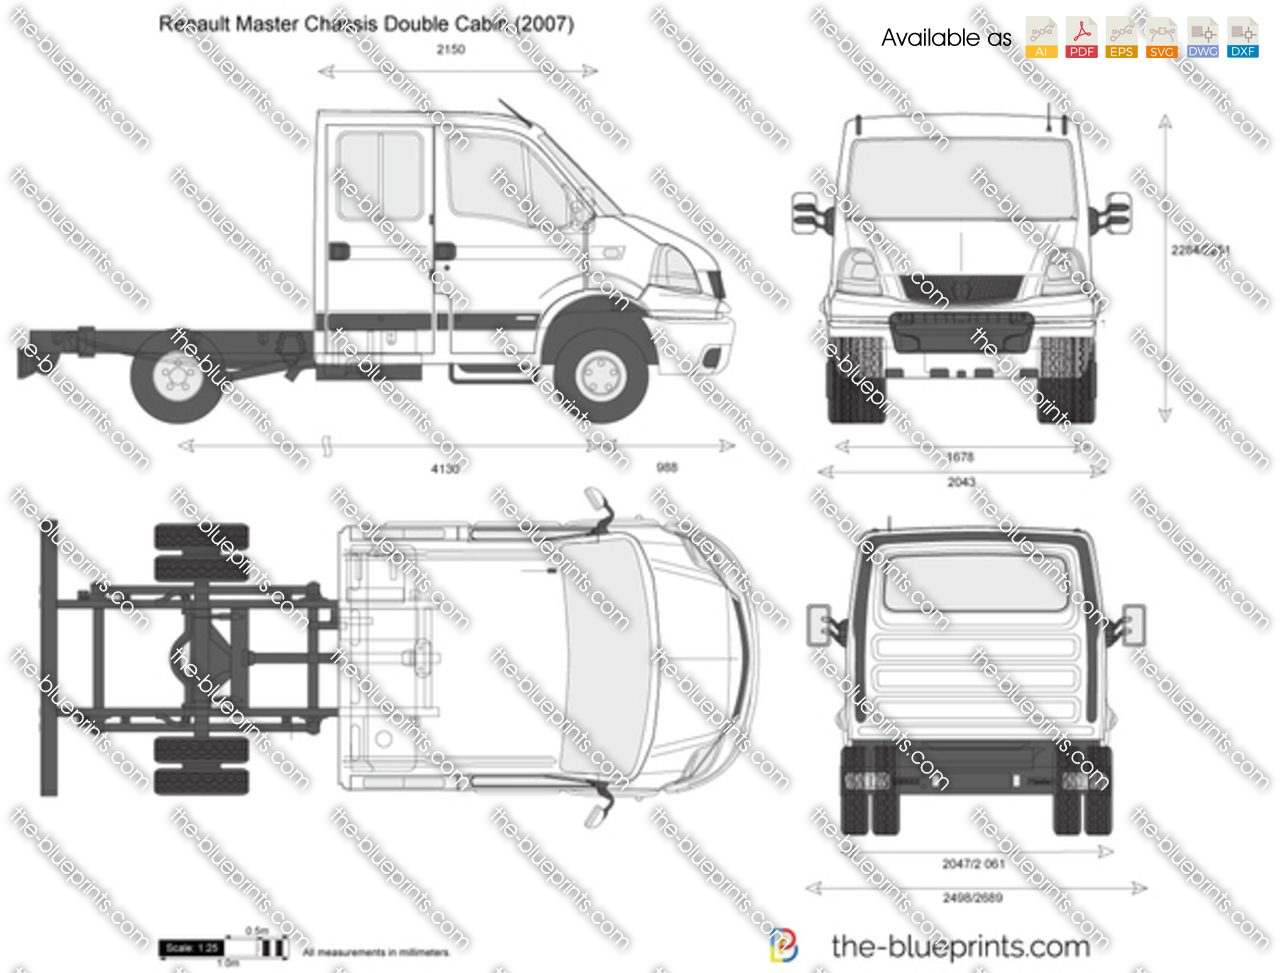 Stock Illustration Hot Rod Engine Schematic Drawing Vector Illustration Image66393906 in addition Renault master chassis double cabin likewise Peugeot boxer l4h2 furthermore Ford trimotor additionally Ford fiesta courier. on ford car illustrations